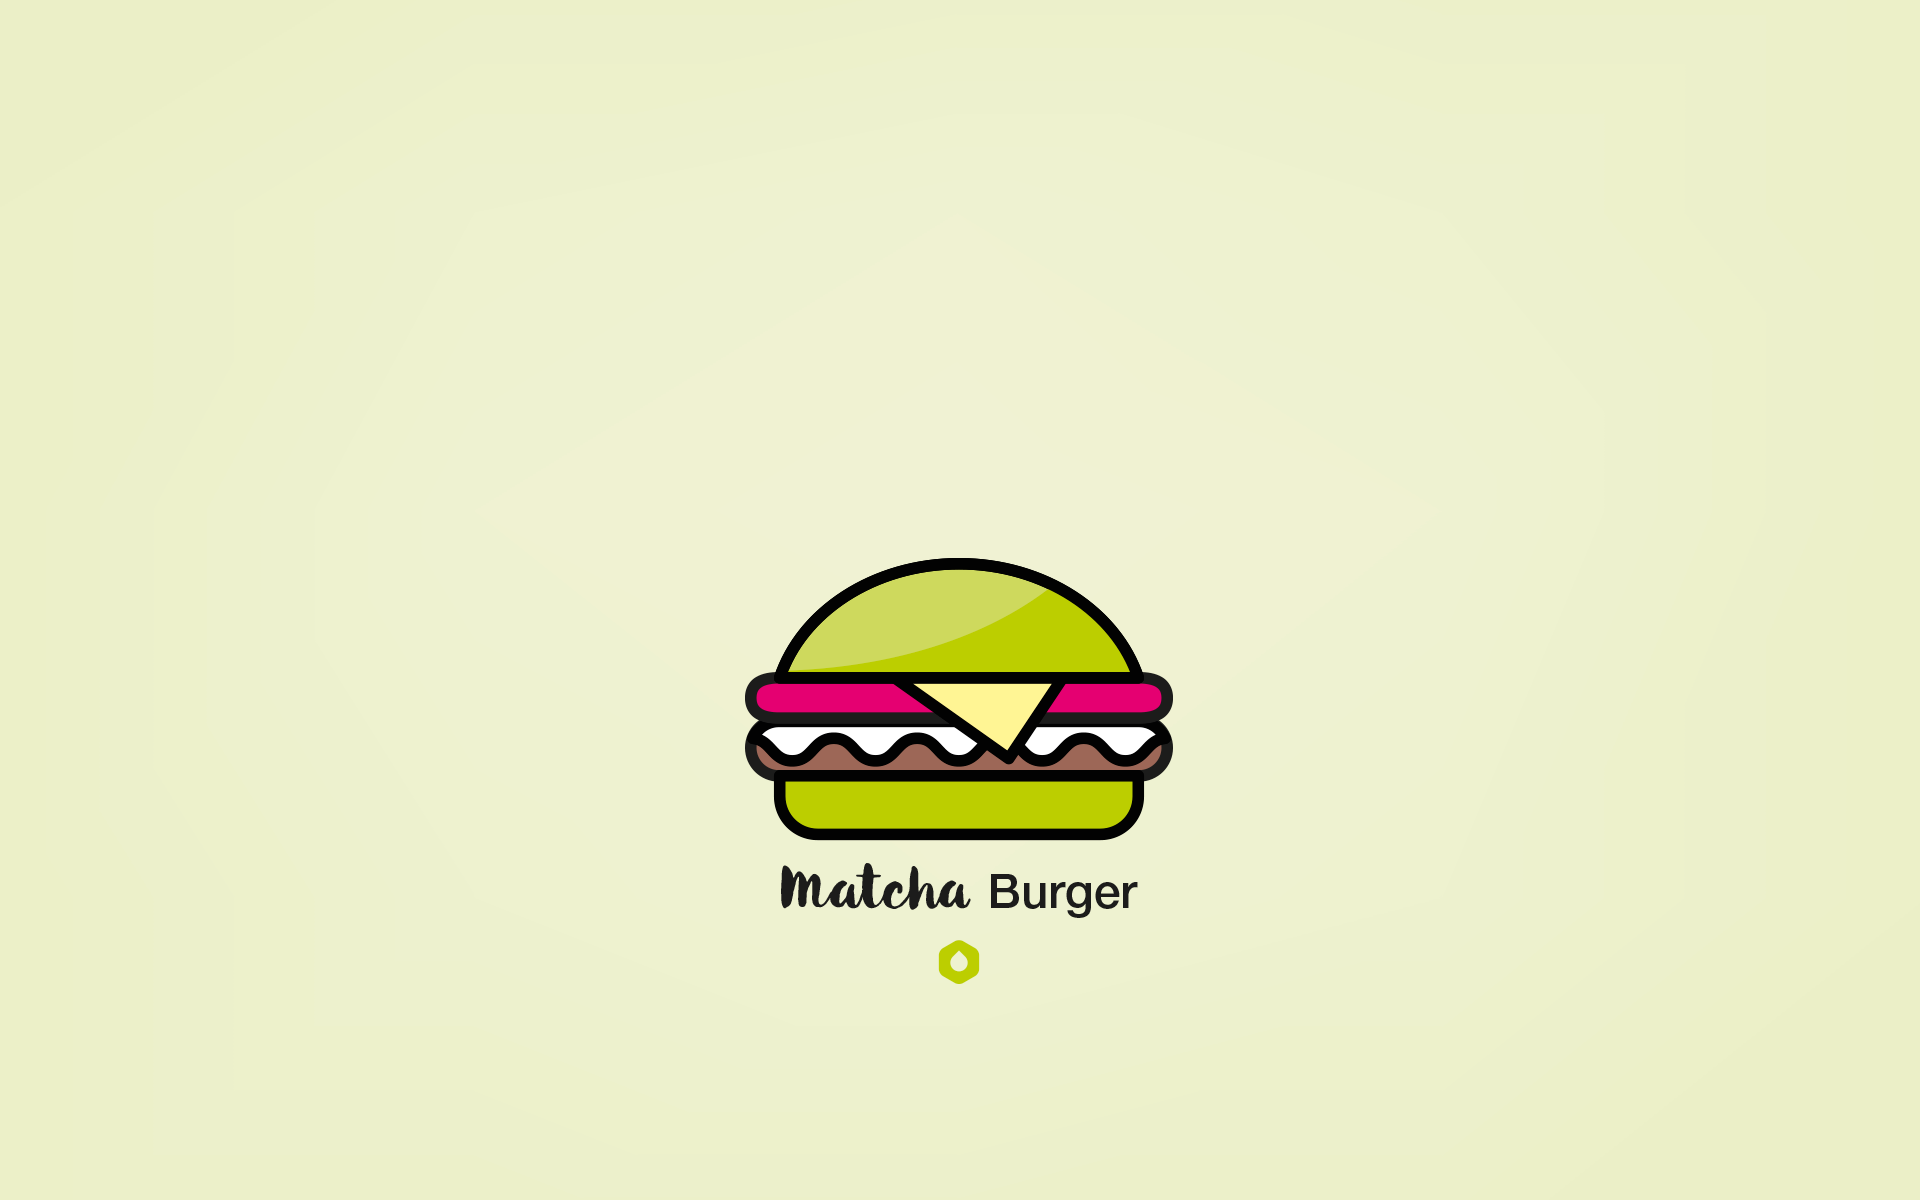 Wallpaper Pick Your Burger - DesktopHD - Matcha